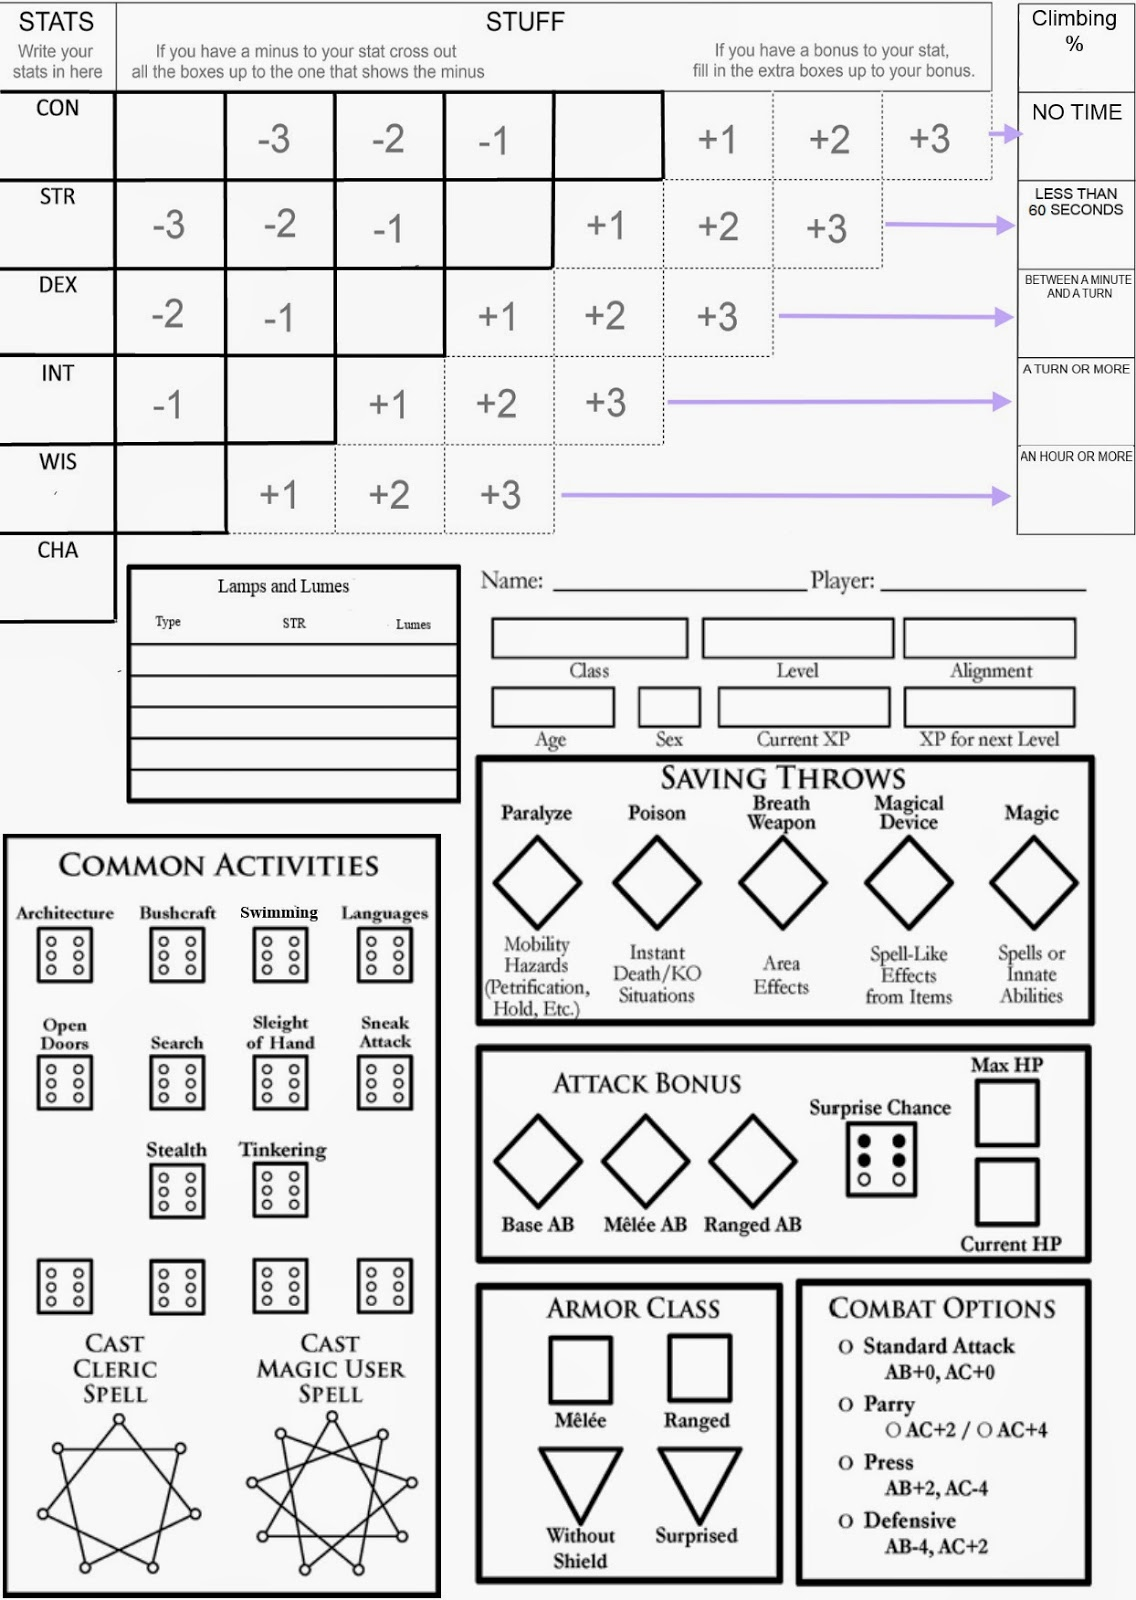 Character information sheet - Veins Character Sheet